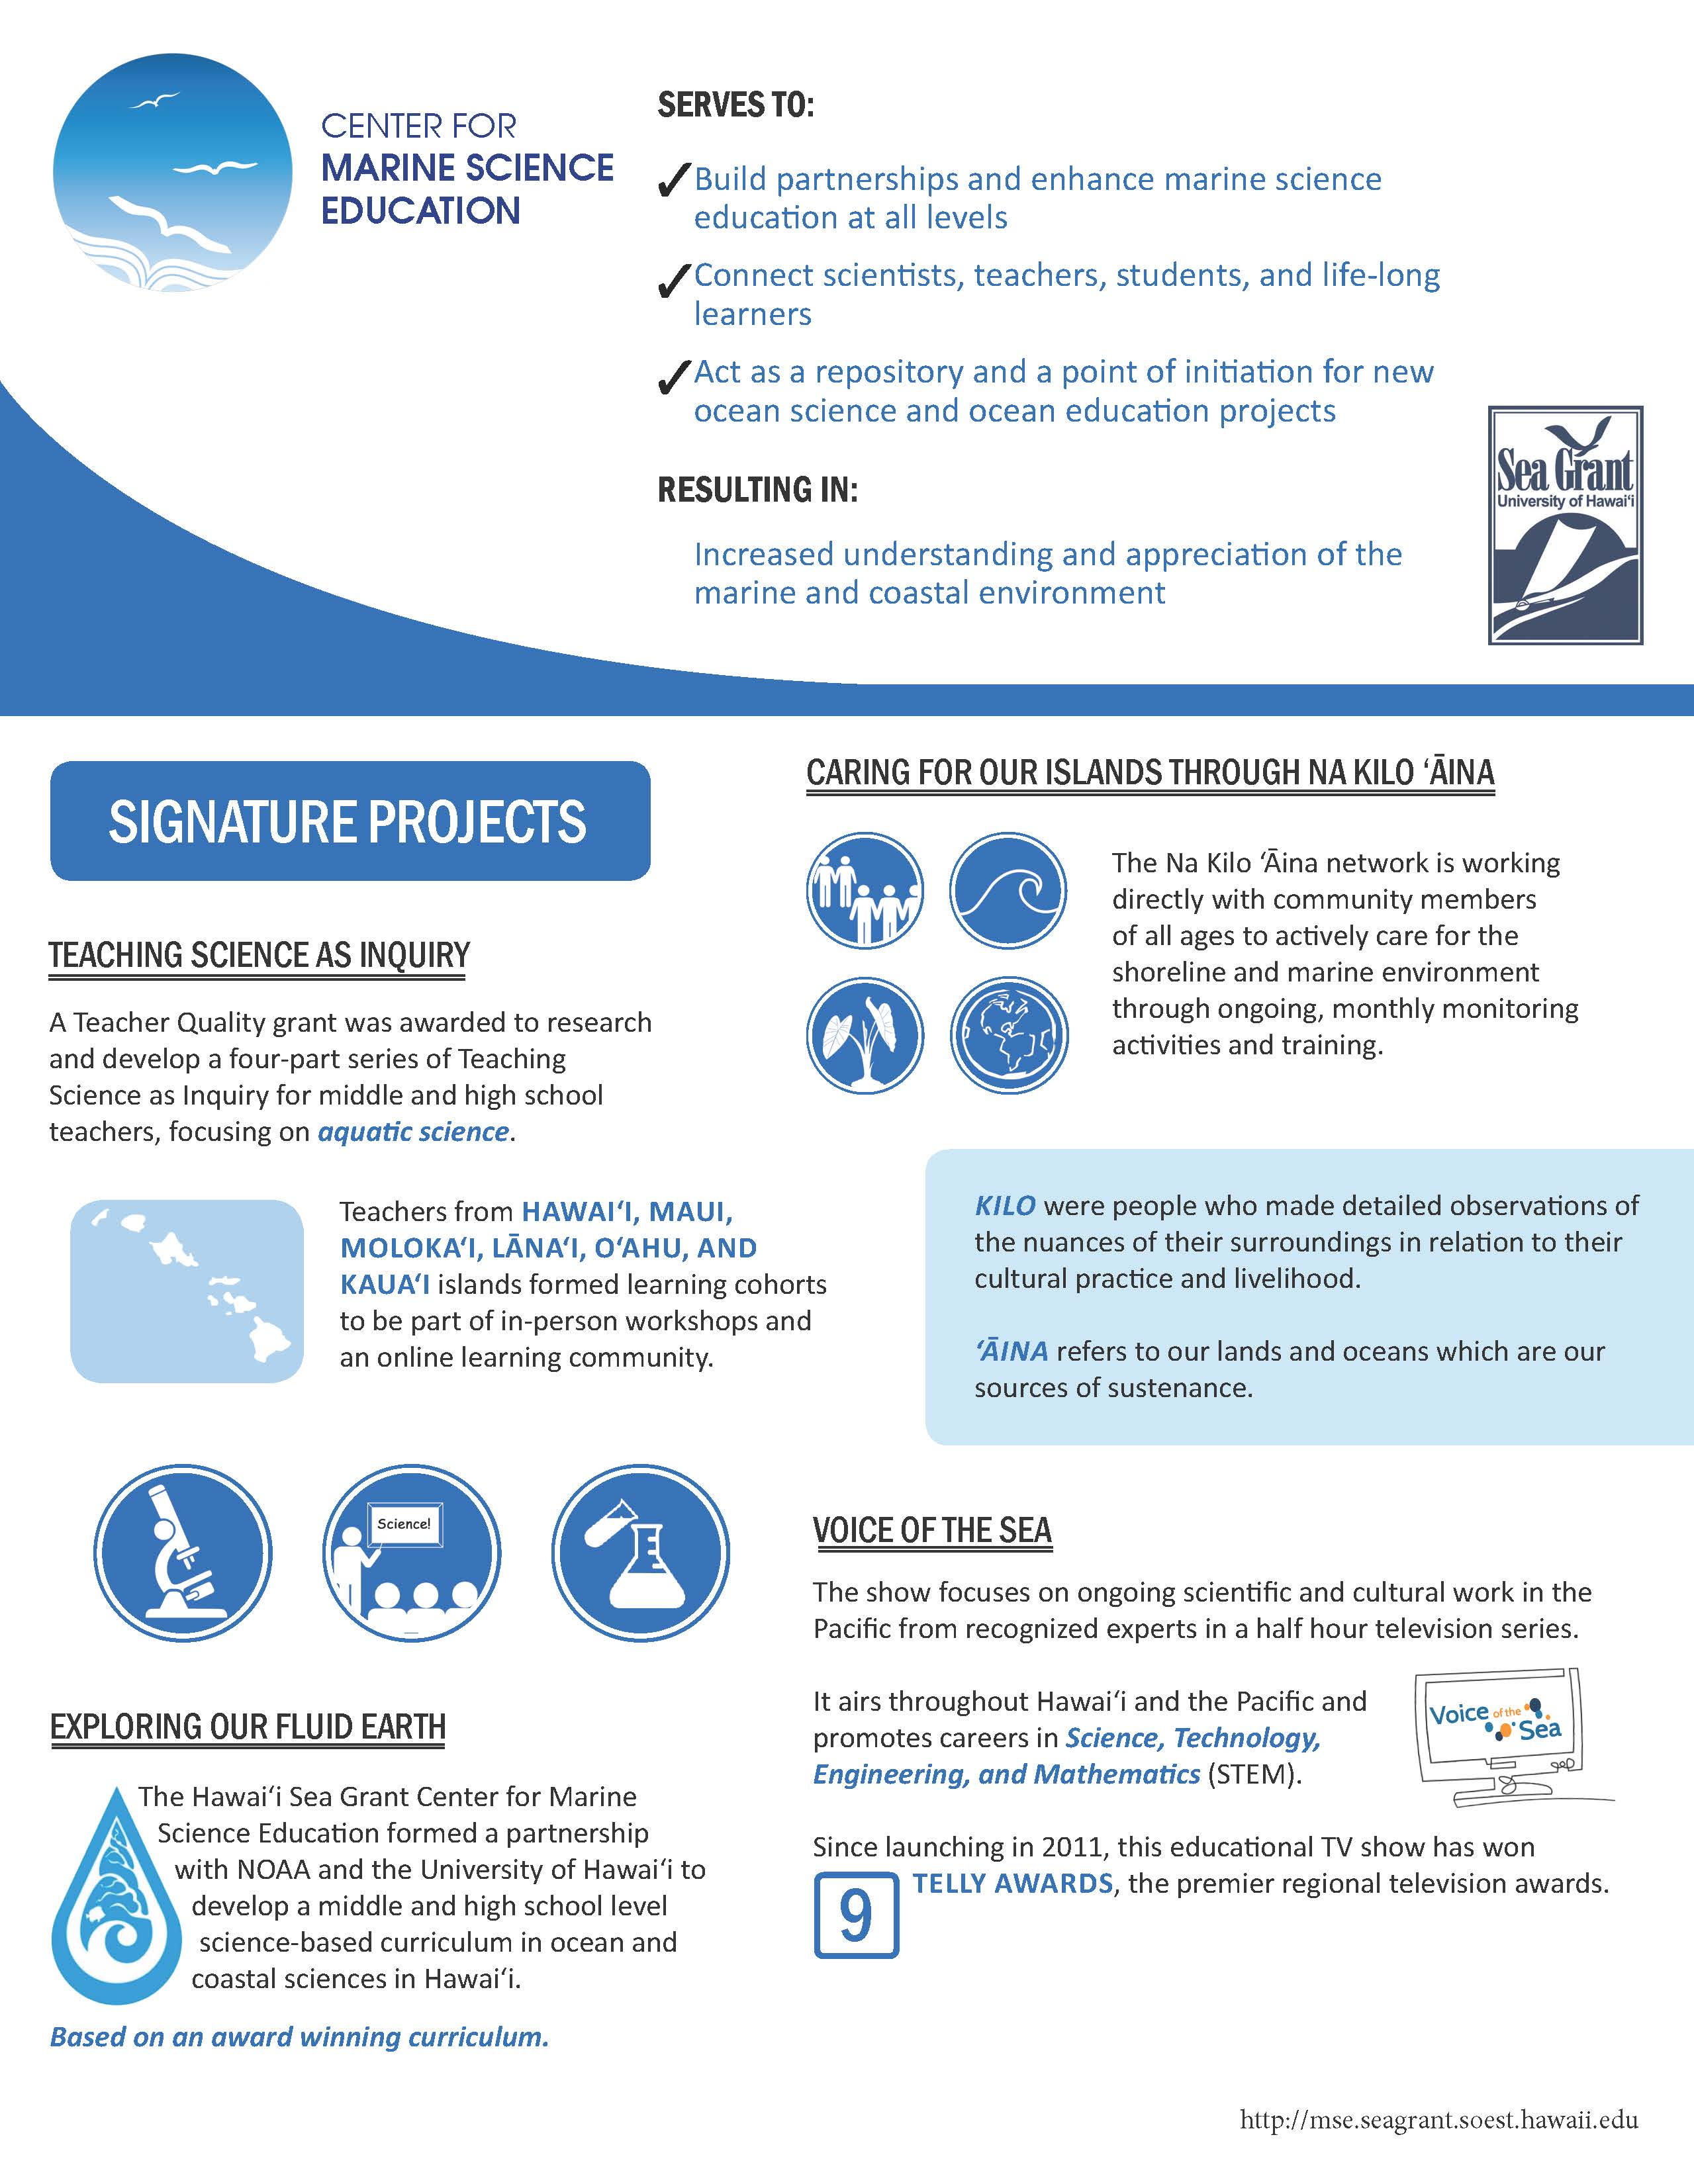 Center for Marine Science Education Infographic